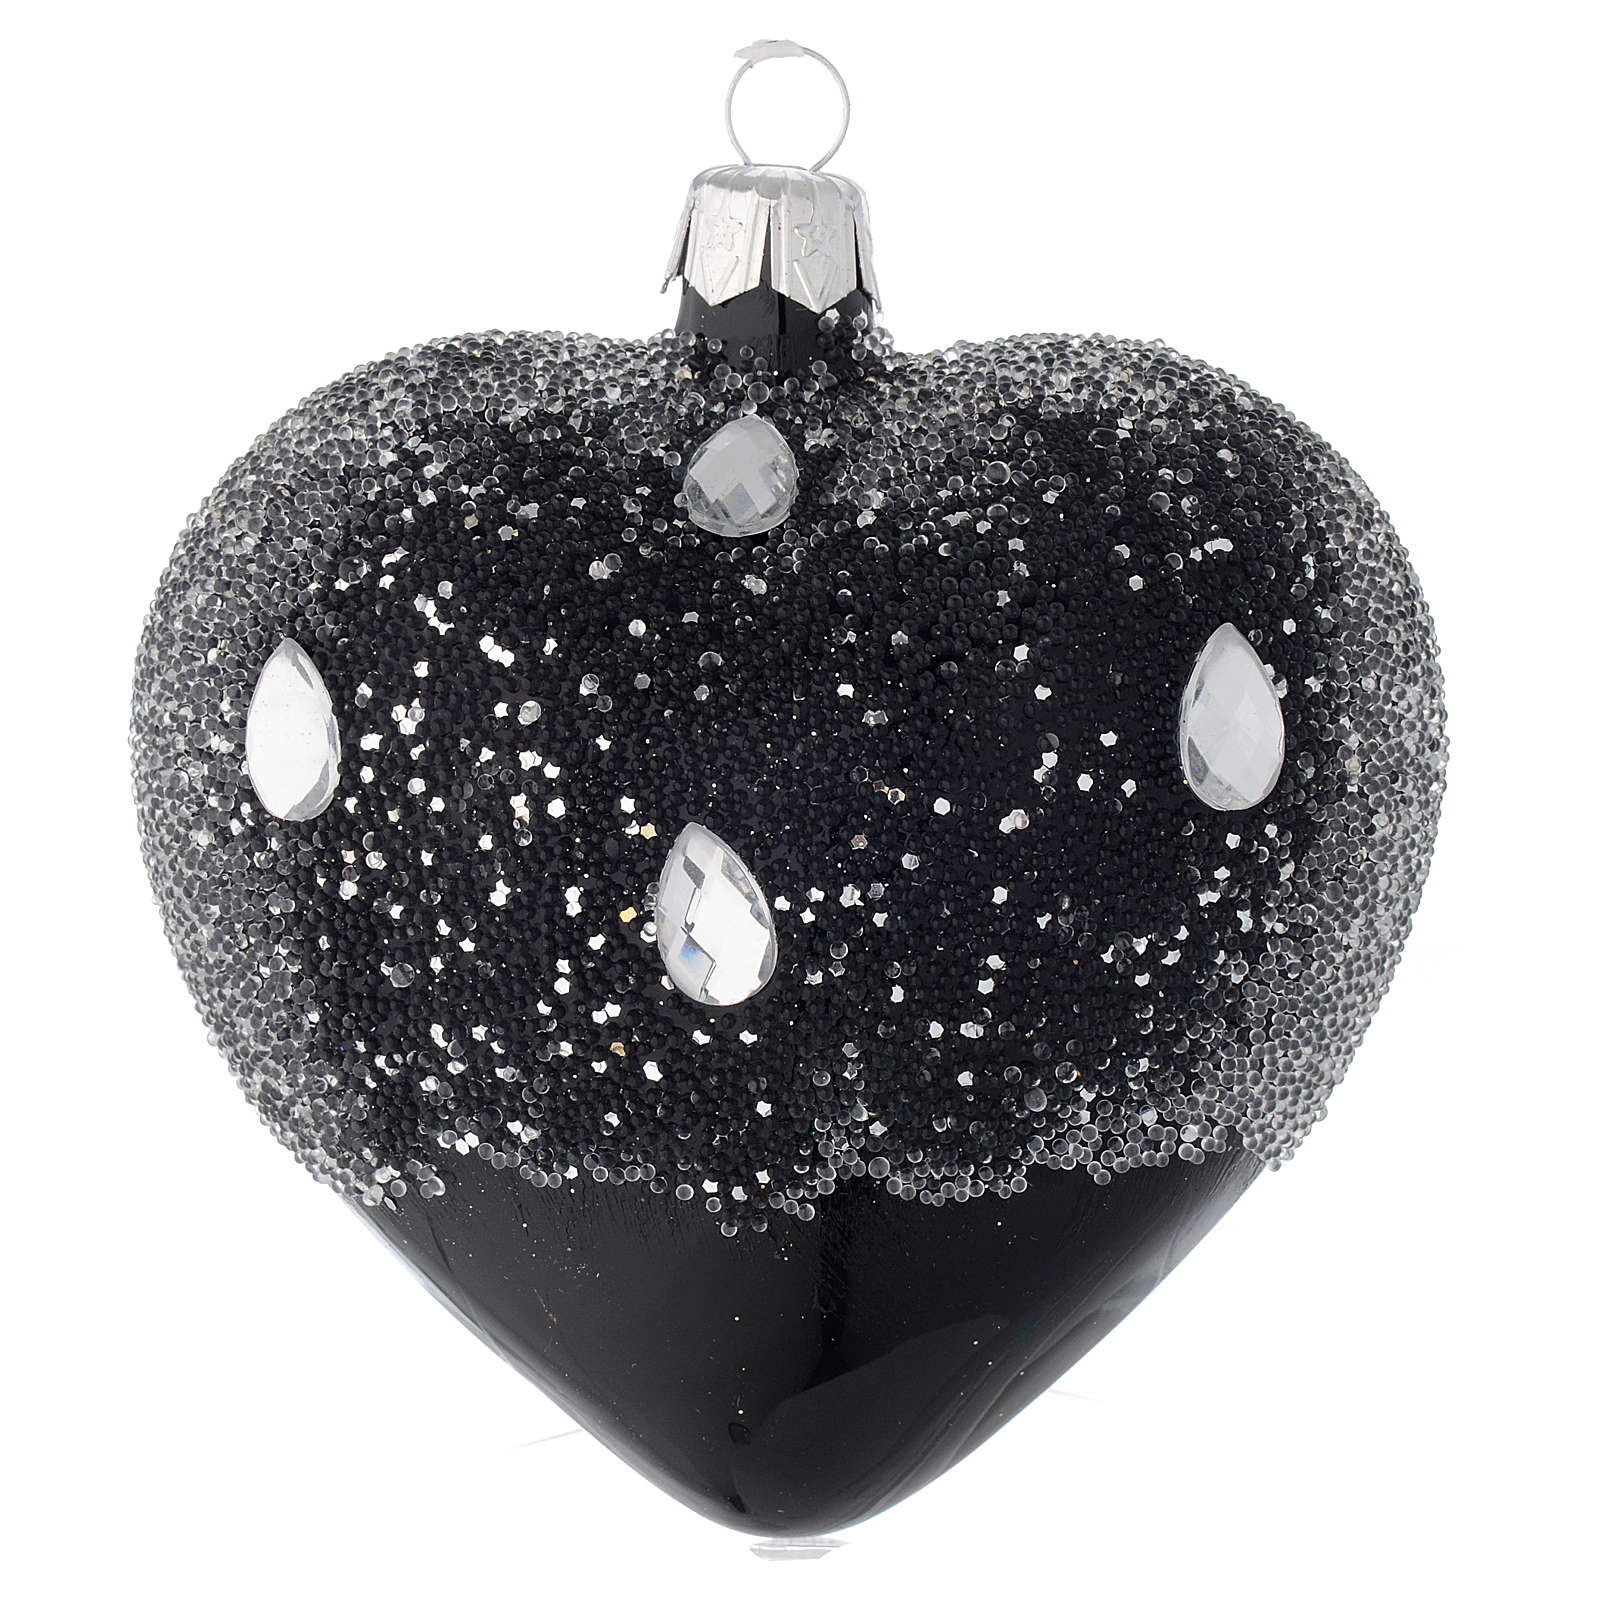 Heart Shaped Bauble in black blown glass with glitters 100mm 4